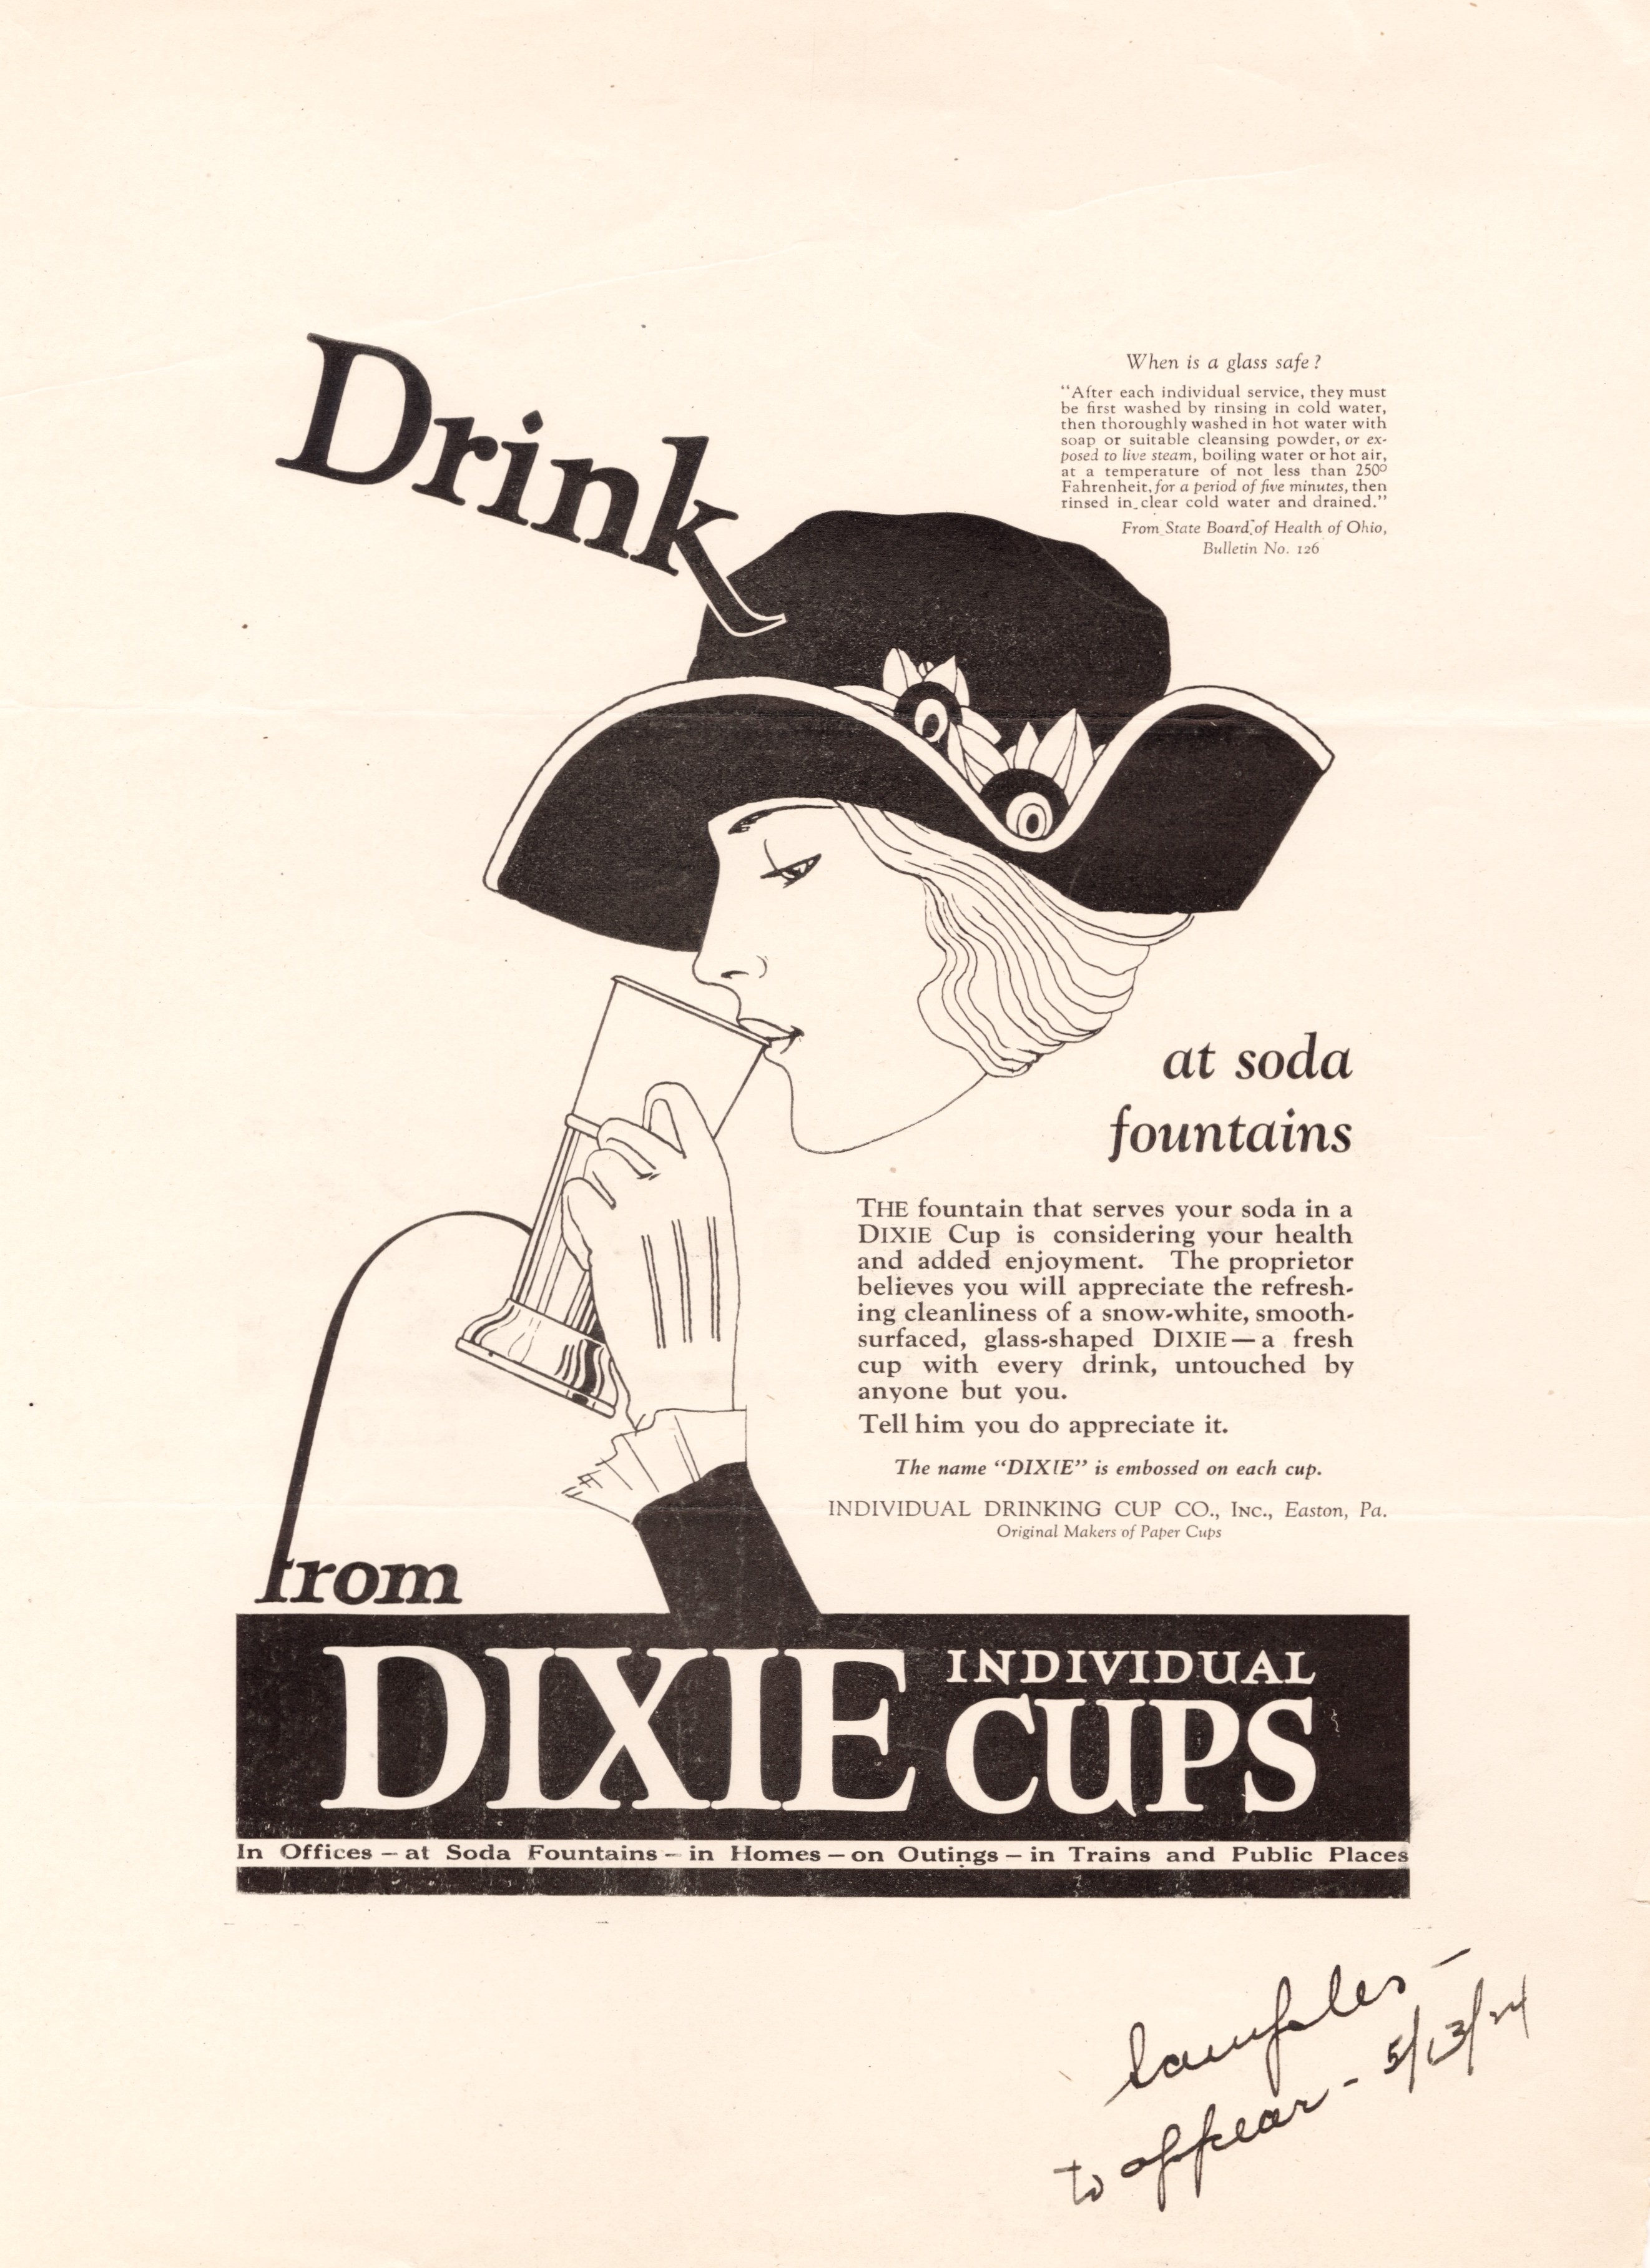 1920s Whistlin Dixie Marketing The Paper Cup 1910 1960